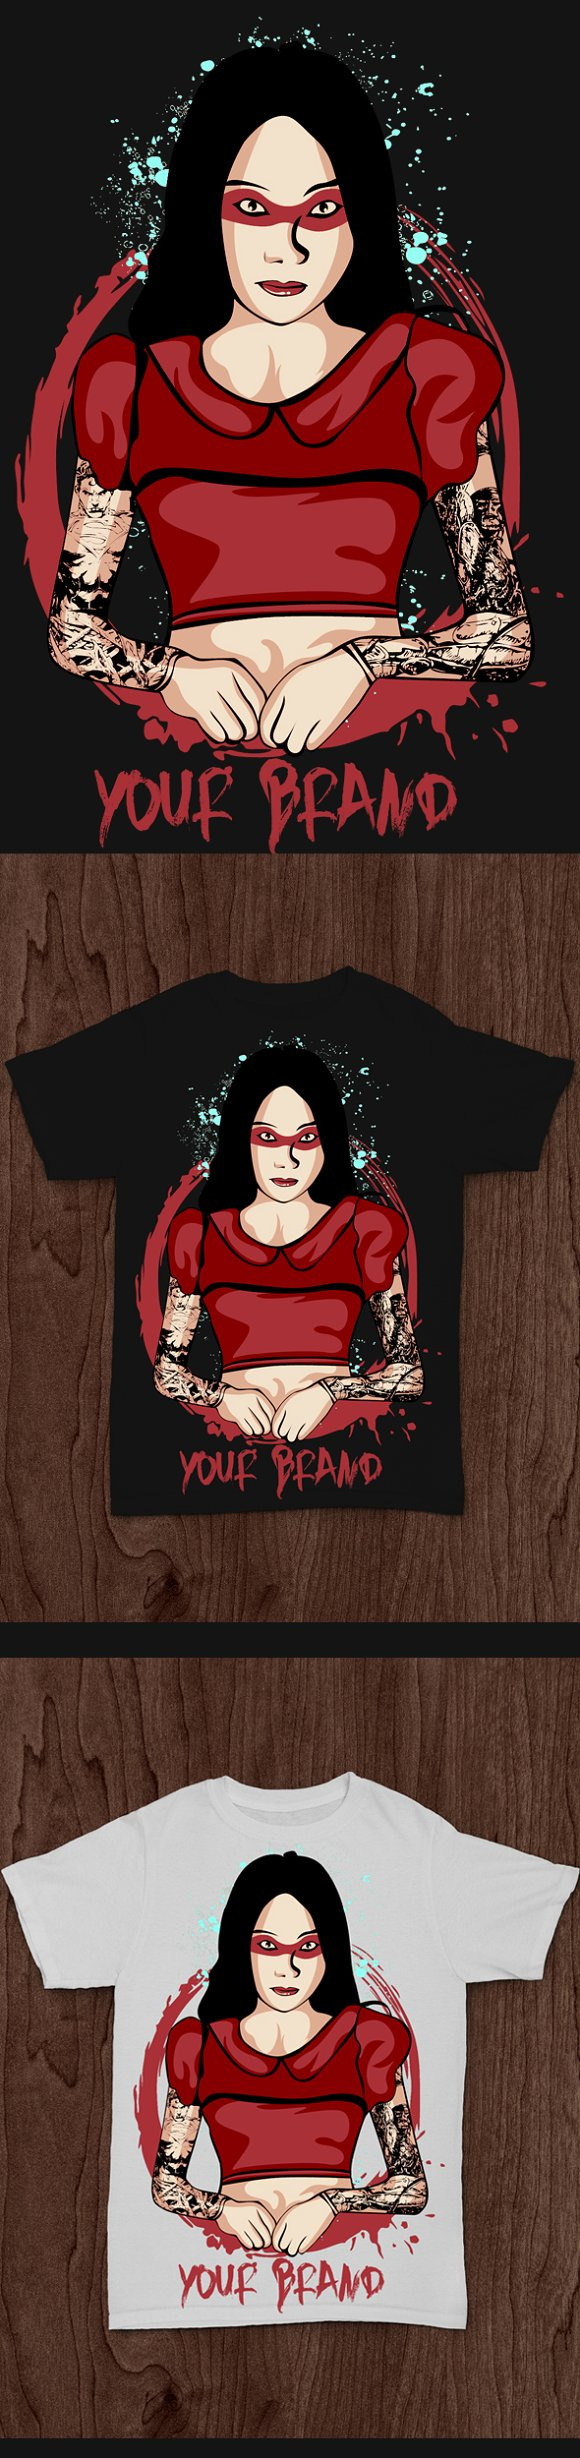 Lady Tattooed 9 in Illustrations - product preview 1